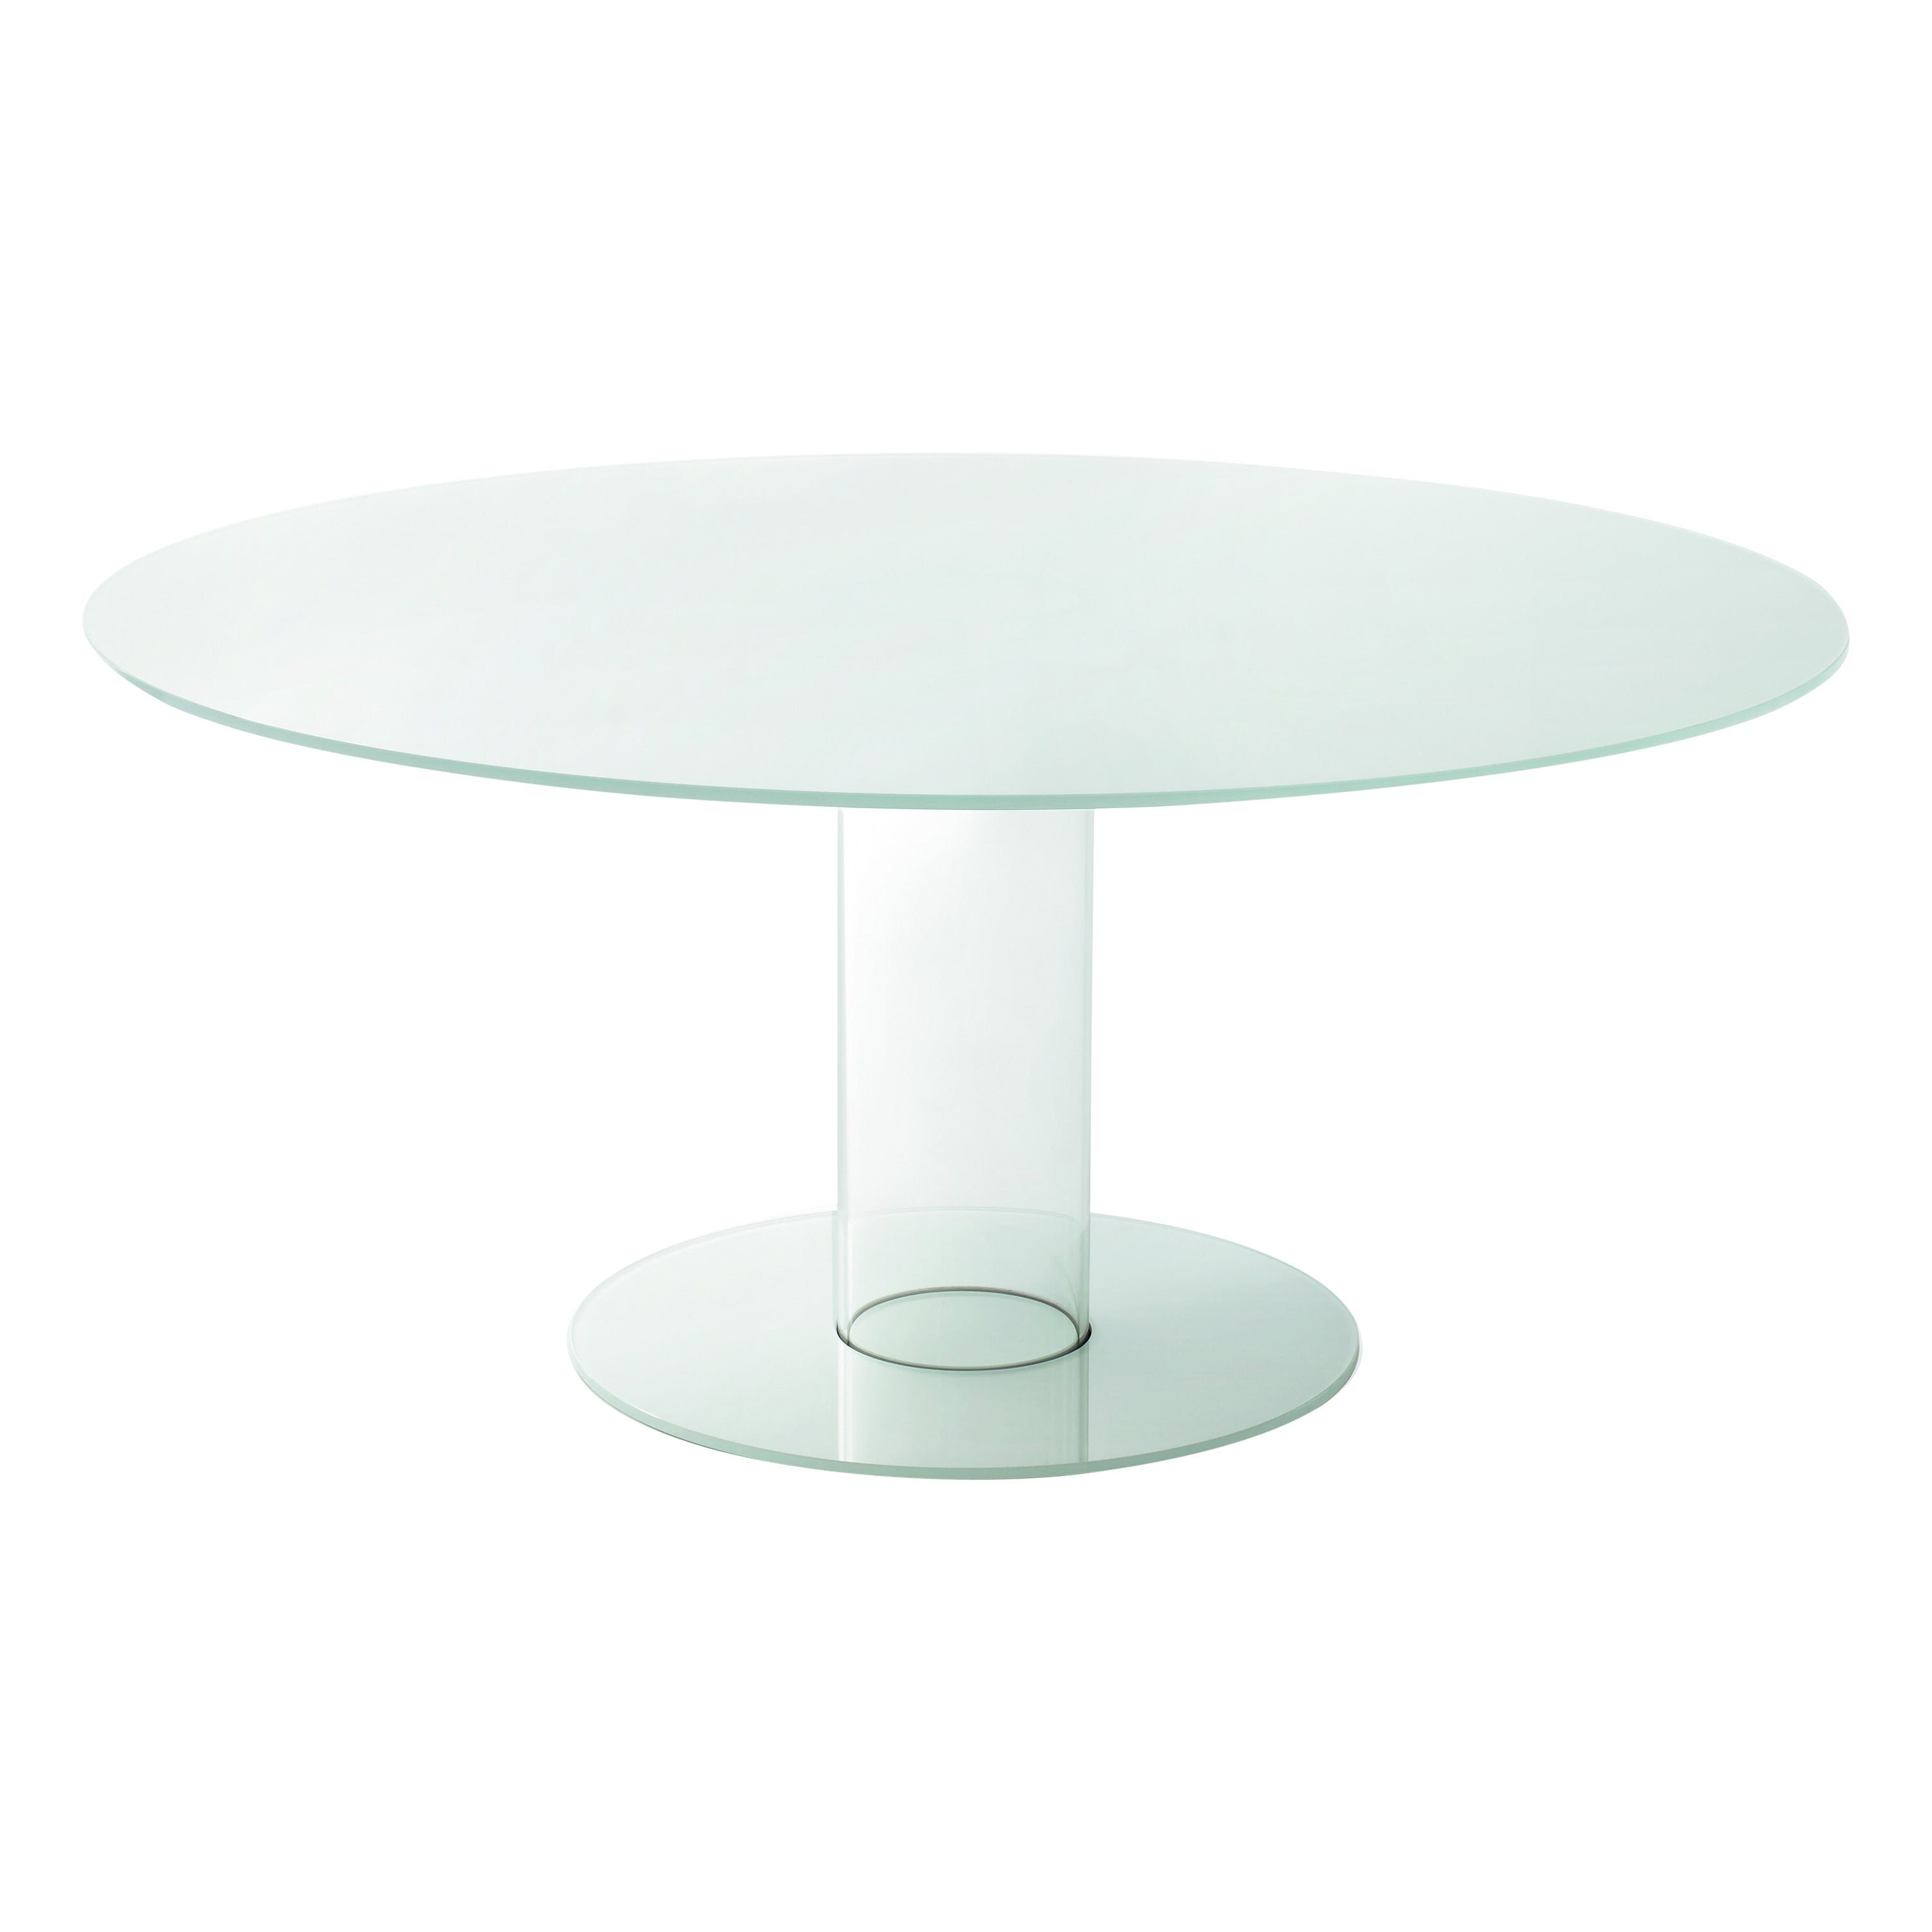 Hub Medium High Table in White Opaque Glass, by Piero Lissoni from Glas Italia